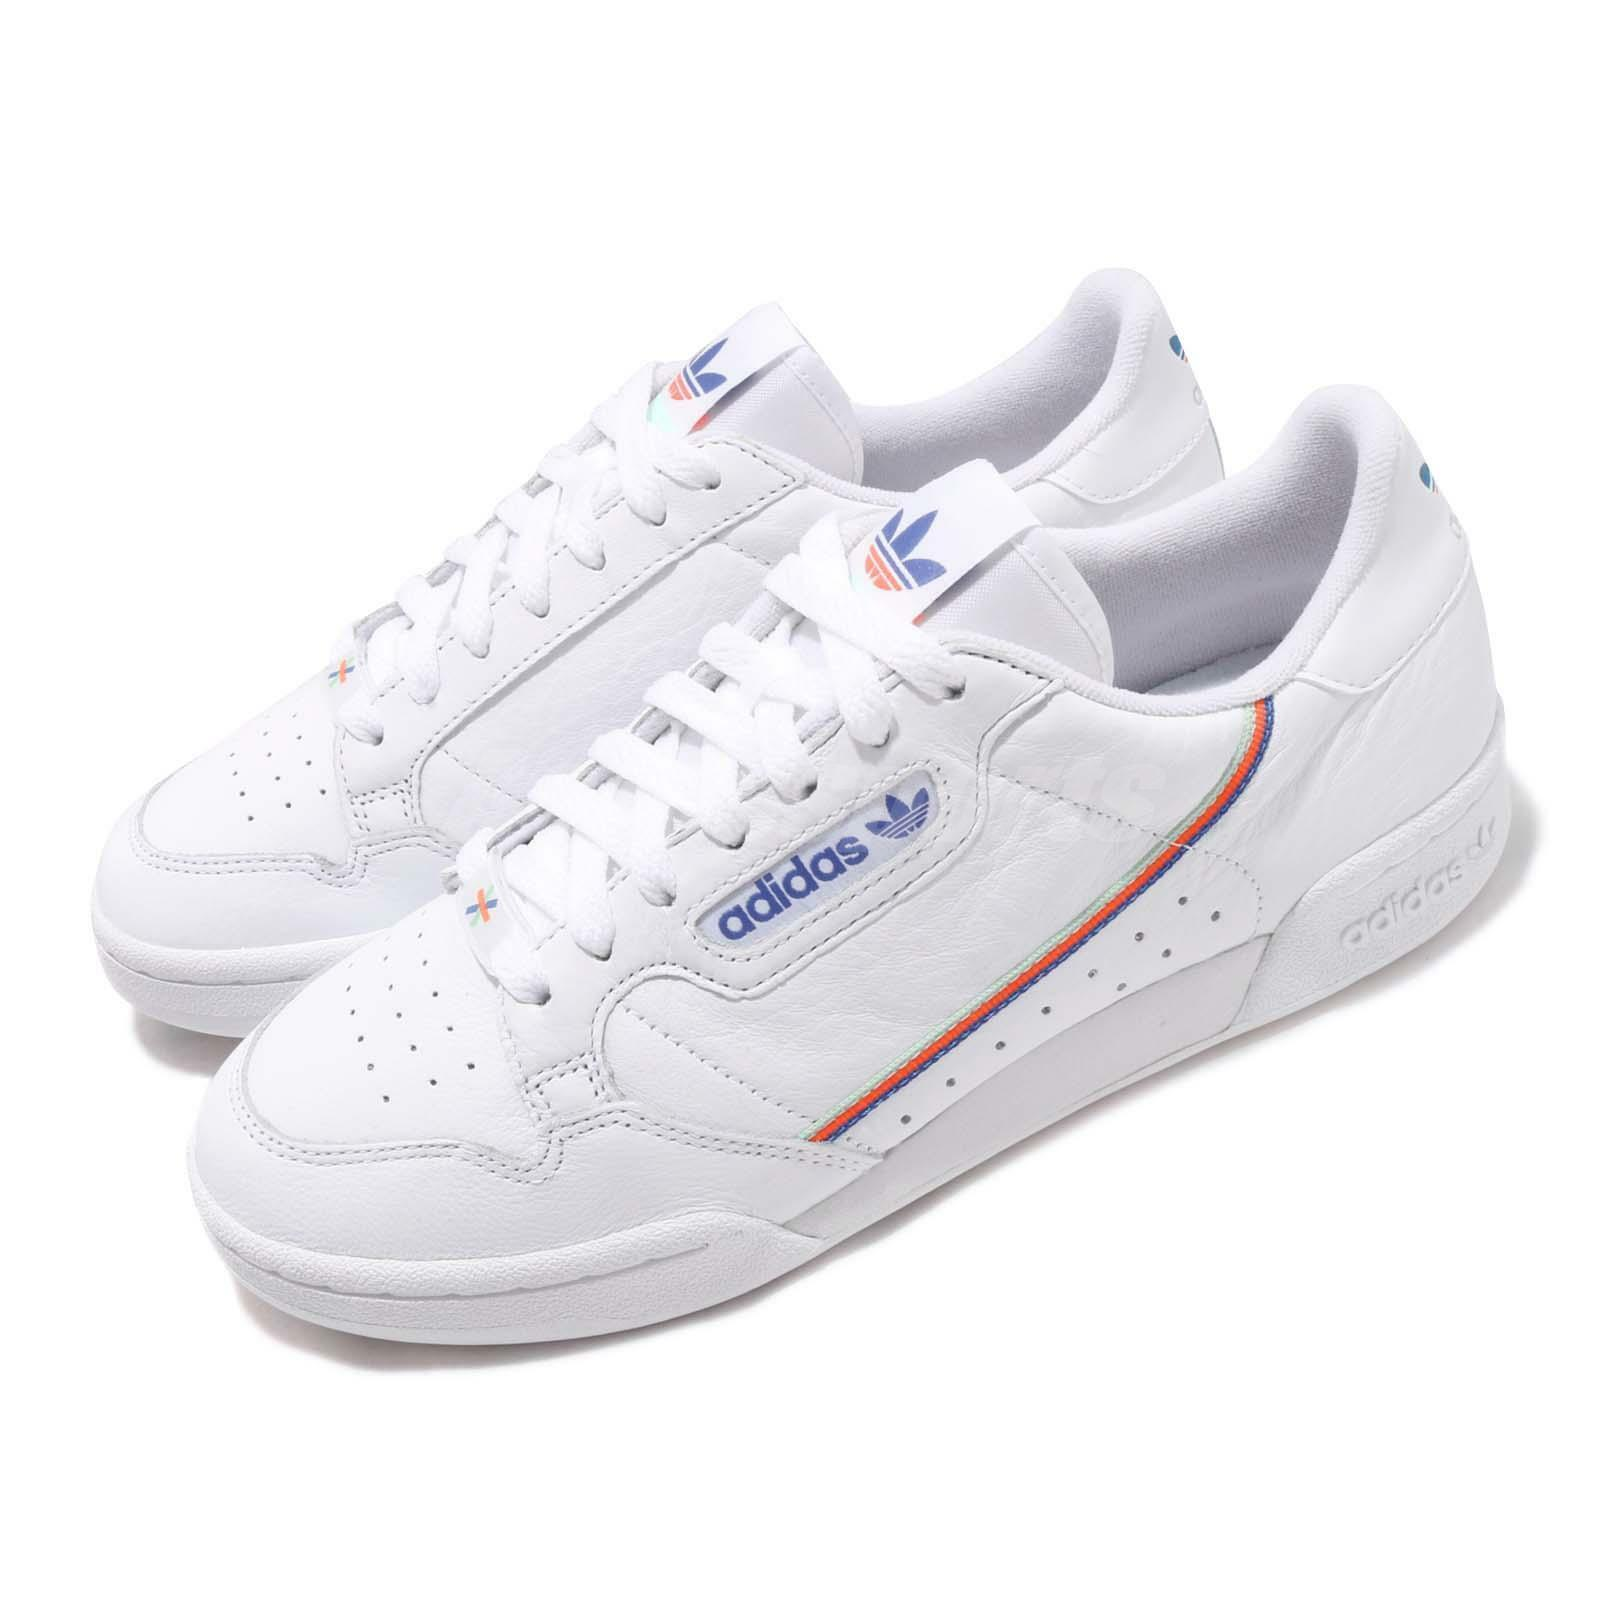 Adidas Originals Continental 80 White bluee Mens Womens Casual shoes EF2820